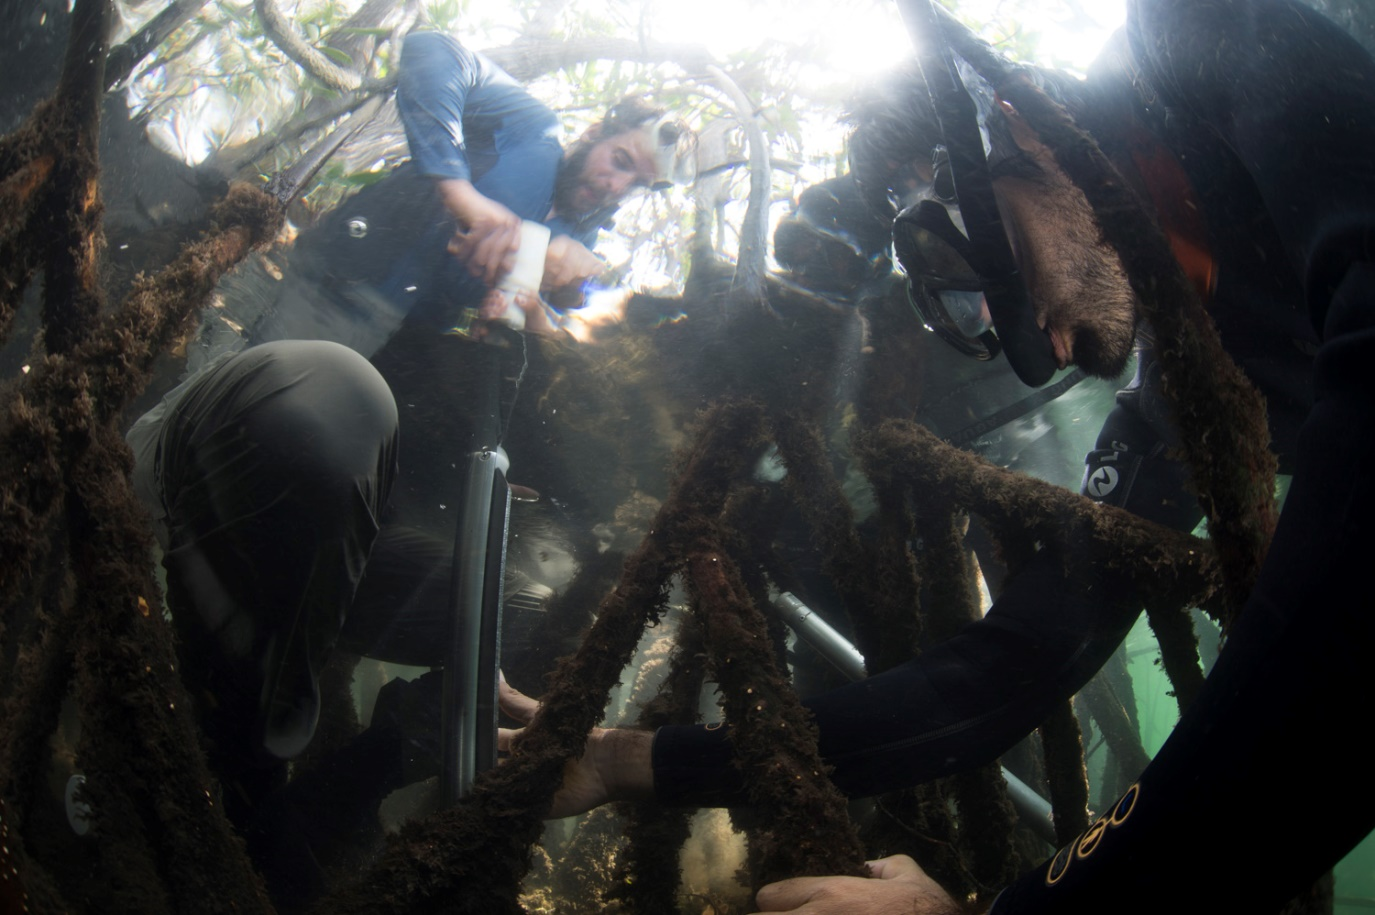 Figure 2 . Science in action: sampling of mangrove sediment cores for carbon measurements. Using a Russian peat corer, we took sediment cores at depth increments of 25 cm, then dried and weighed them for lab analysis. Photo: Octavio Aburto / Charles Darwin Foundation